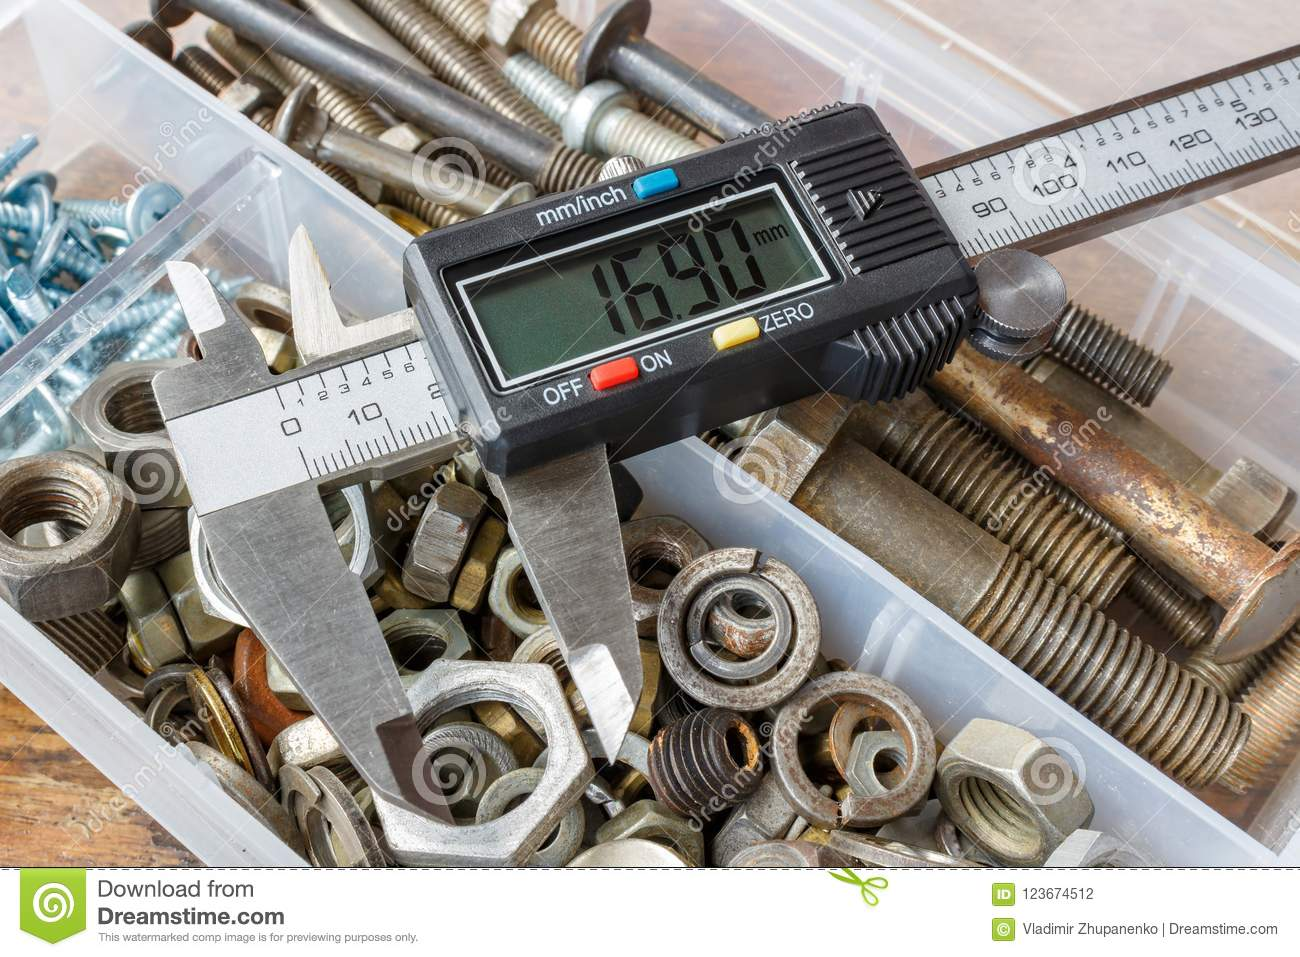 Digital electronic caliper on a background of opened storage box with rusty used bolts and nuts